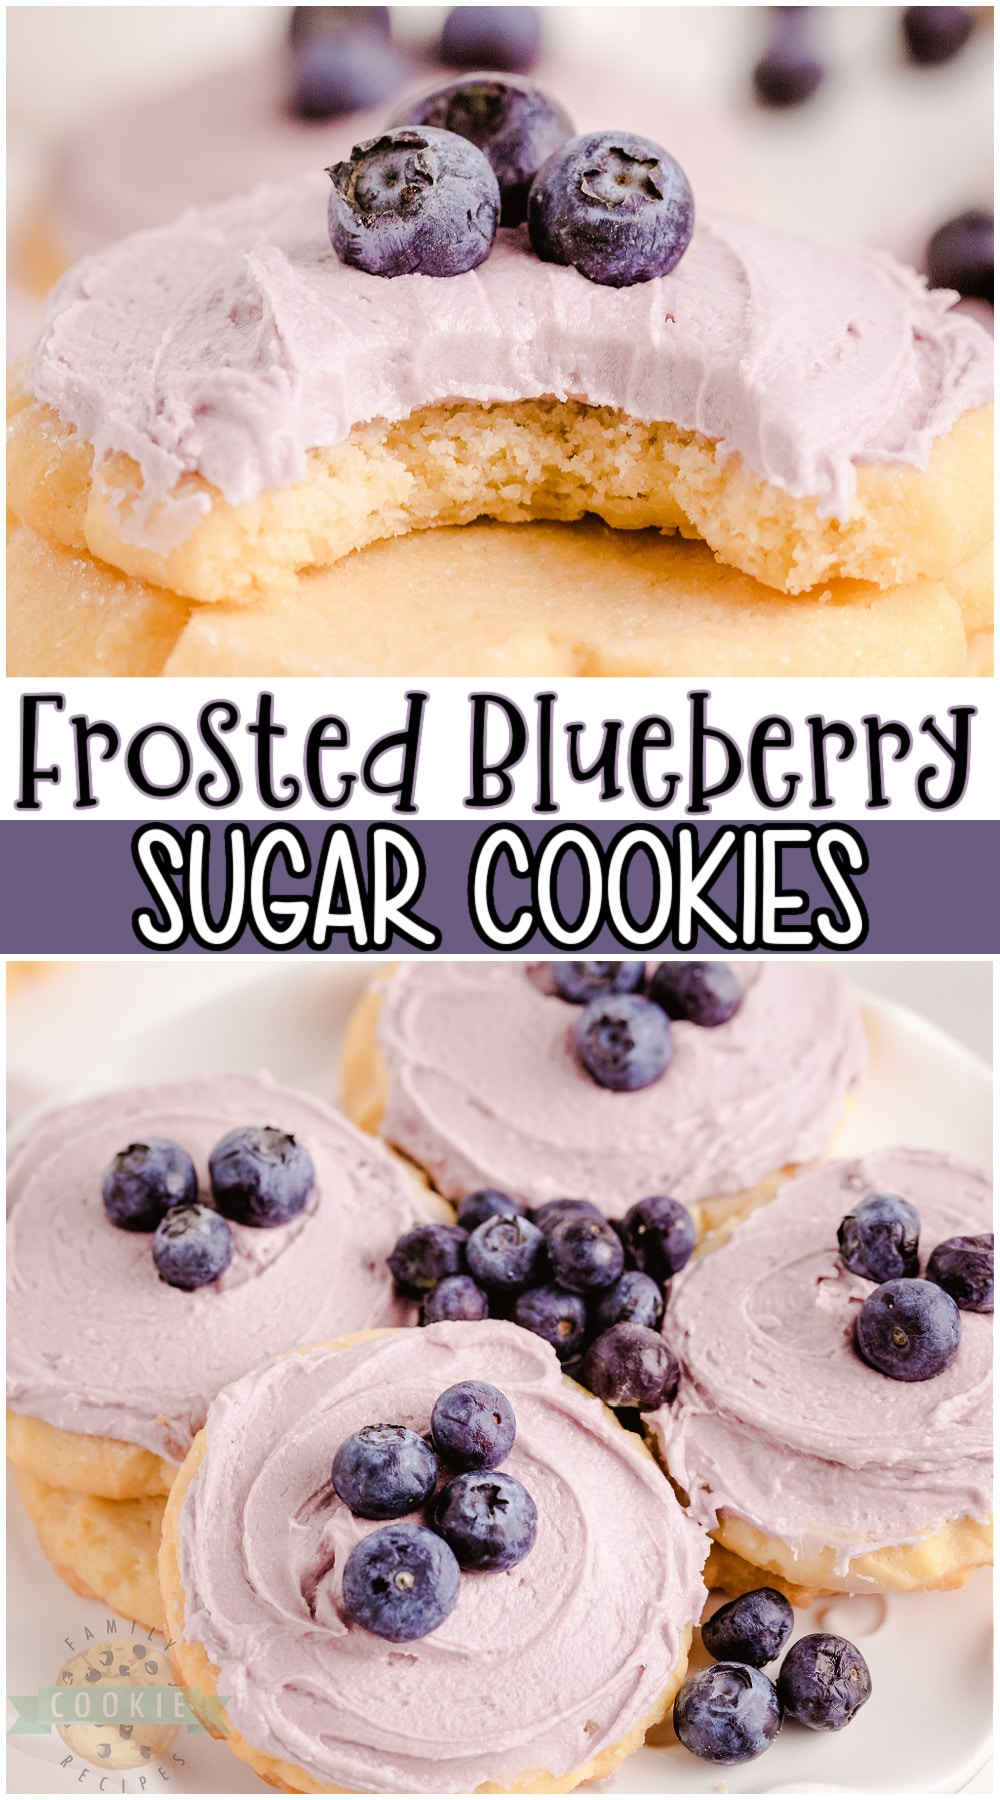 Blueberry sugar cookies made with a soft, vanilla cookie dough & an absolutely delightful blueberry buttercream frosting on top! Frosted sugar cookie with blueberries perfect for any occasion! #cookies #blueberry #sugarcookies #baking #easyrecipe from FAMILY COOKIE RECIPES via @buttergirls